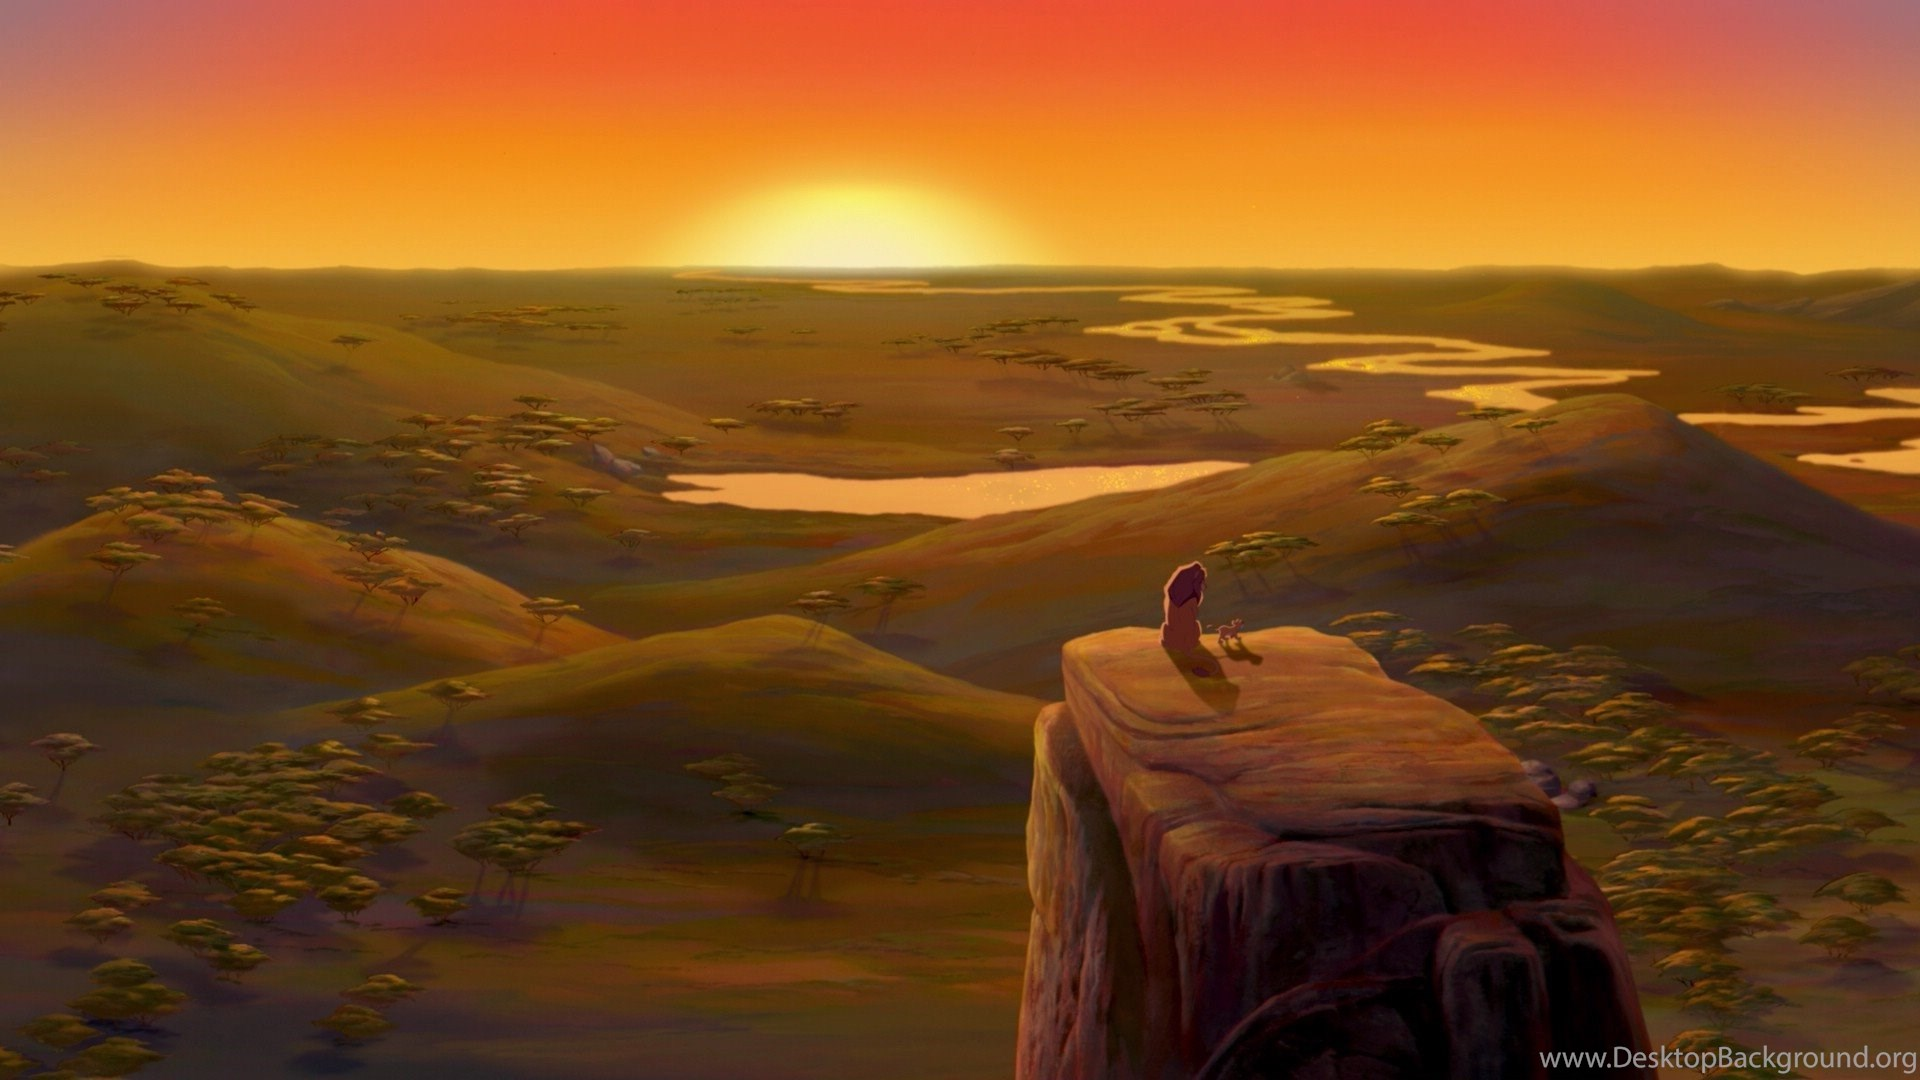 Sun Disney Company Simba The Lion King Lions Mufasa